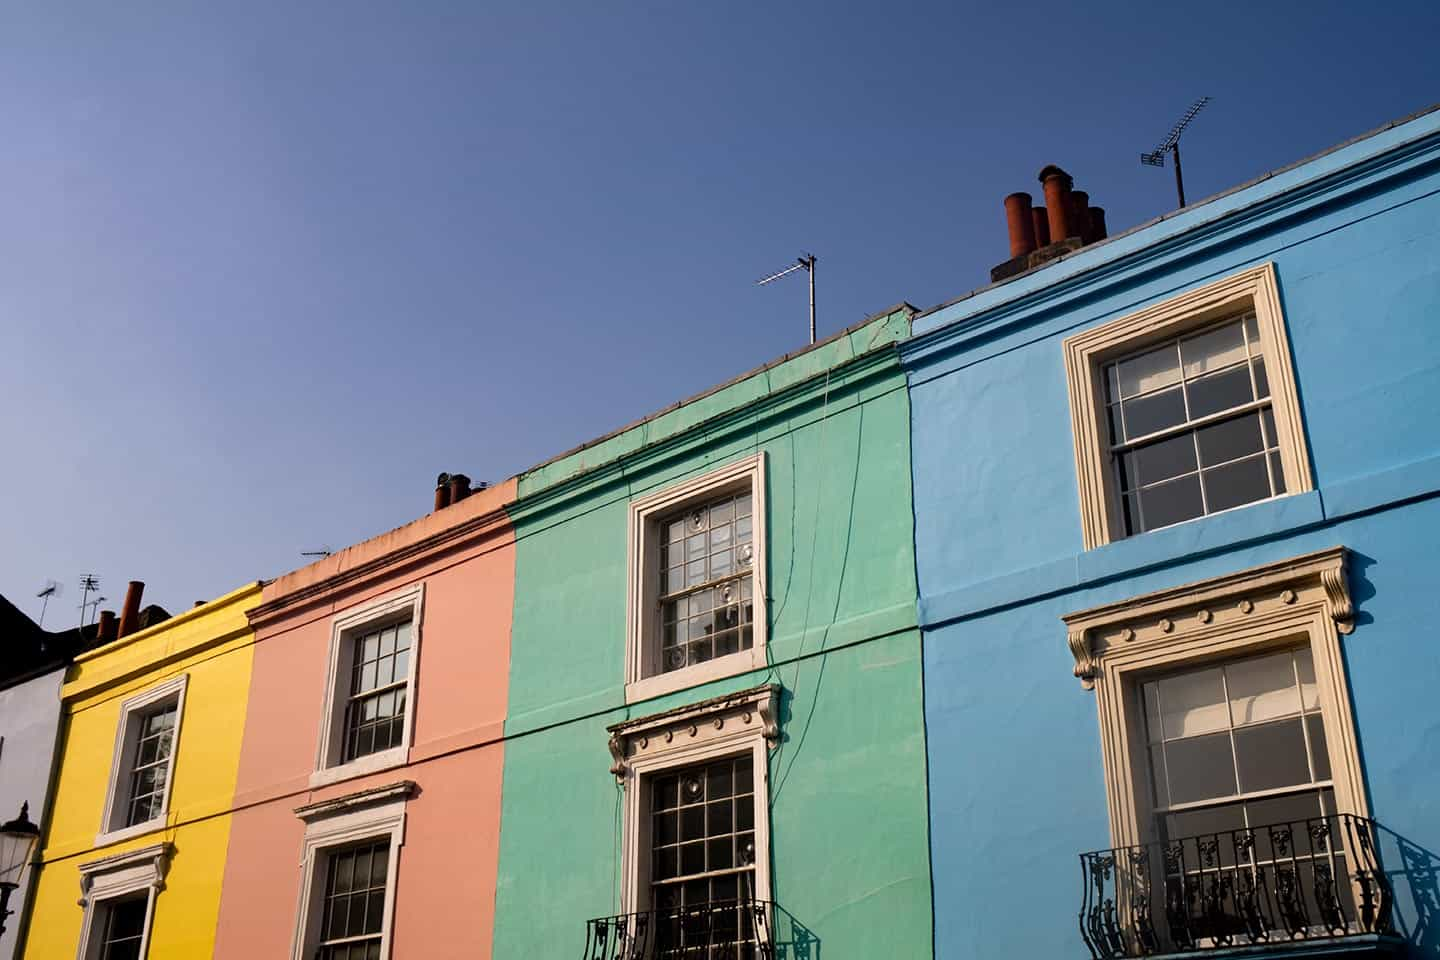 Image of colourful houses on Portobello Road, Notting Hill, London